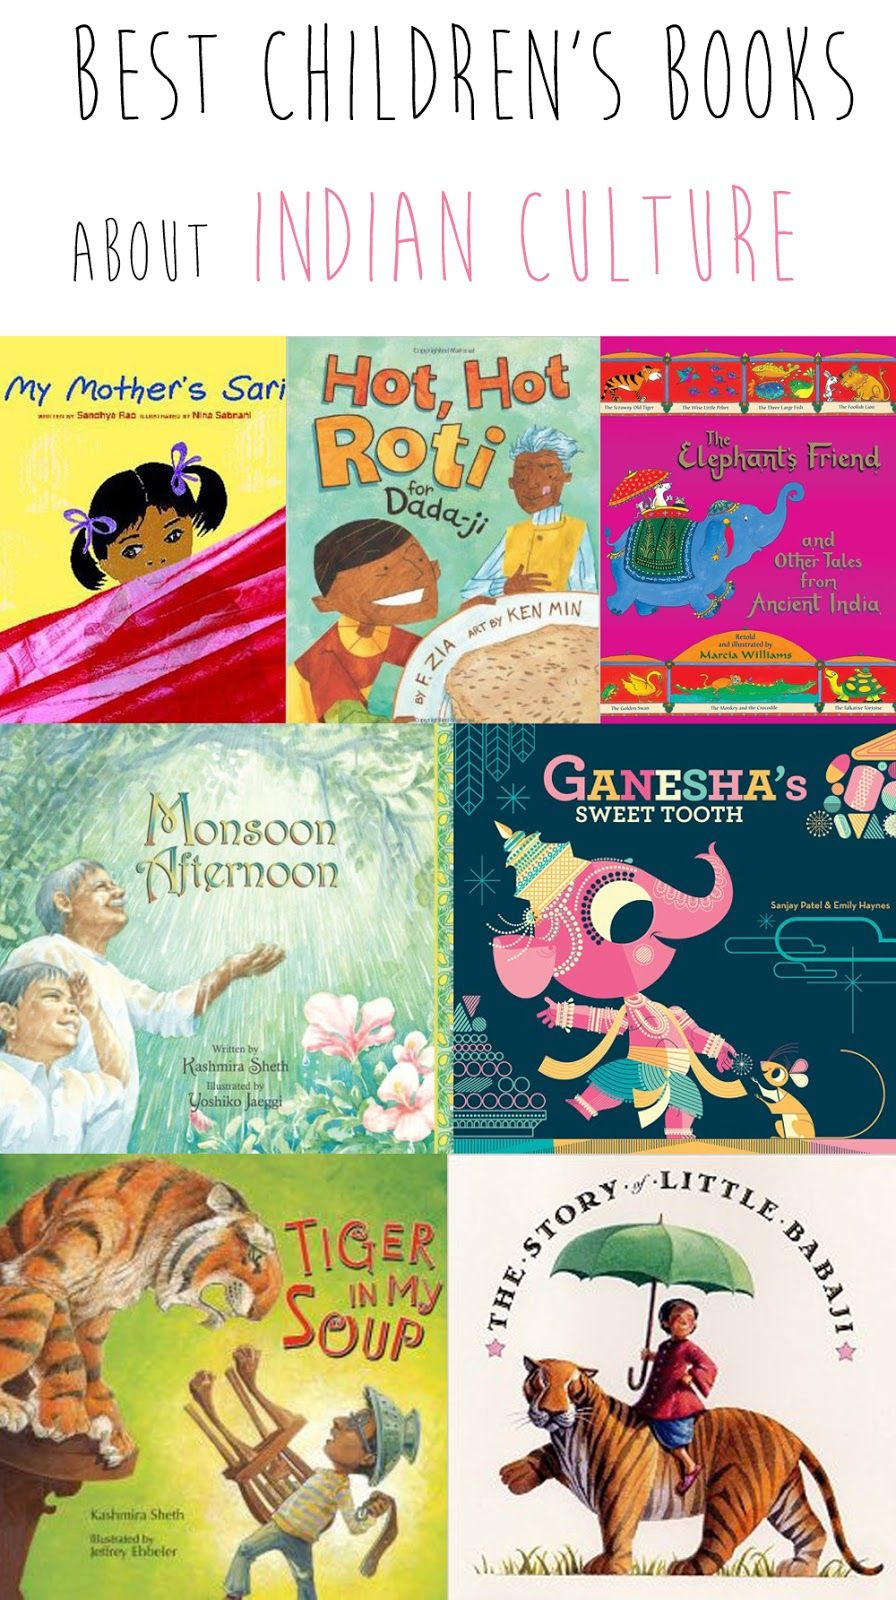 Best children's books about Indian culture from @madhmama ...